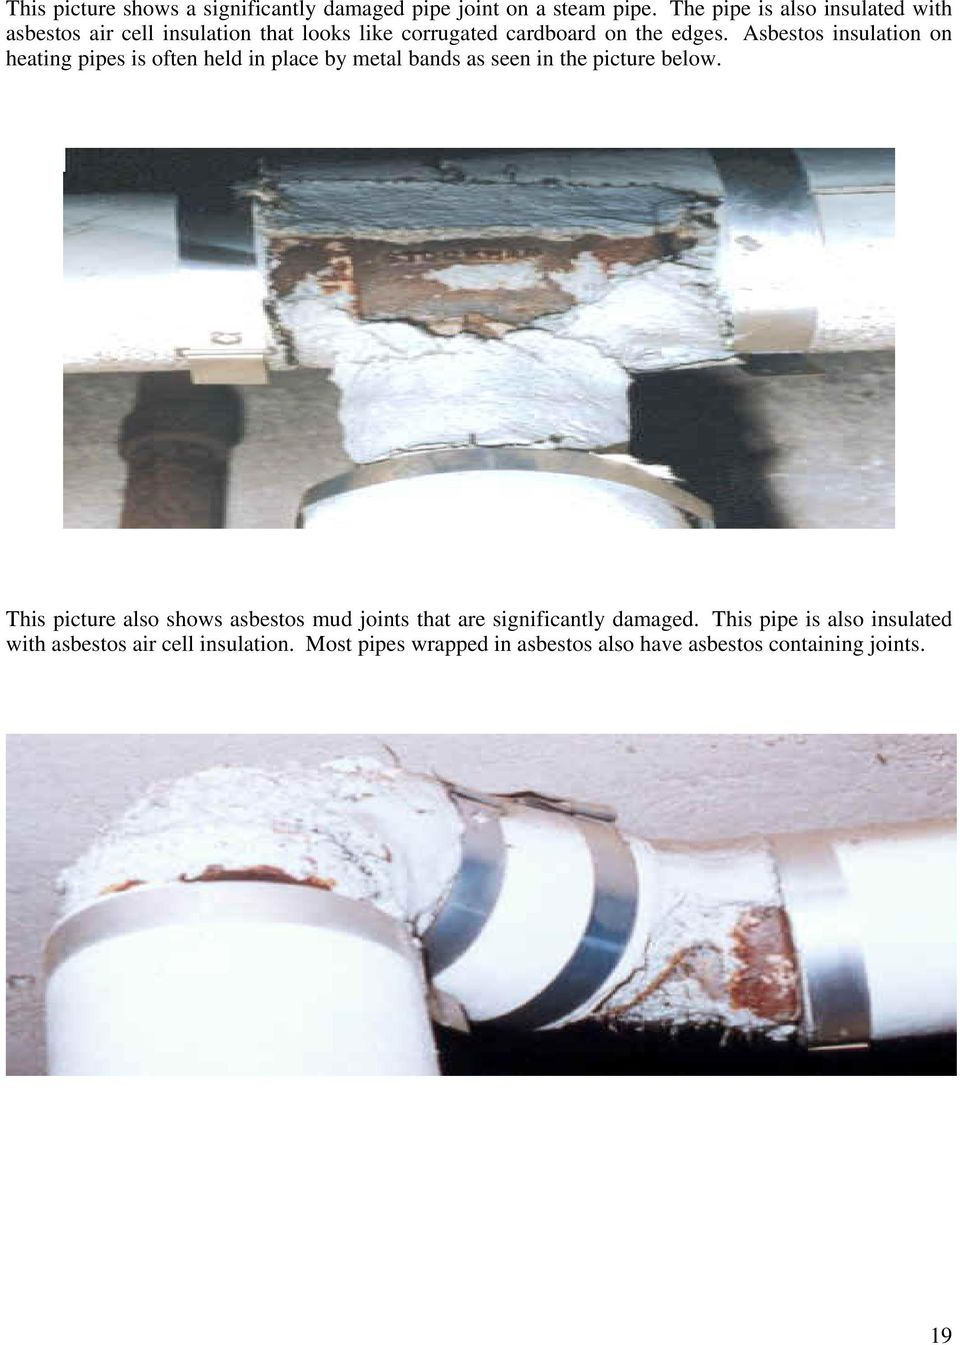 Asbestos insulation on heating pipes is often held in place by metal bands as seen in the picture below.